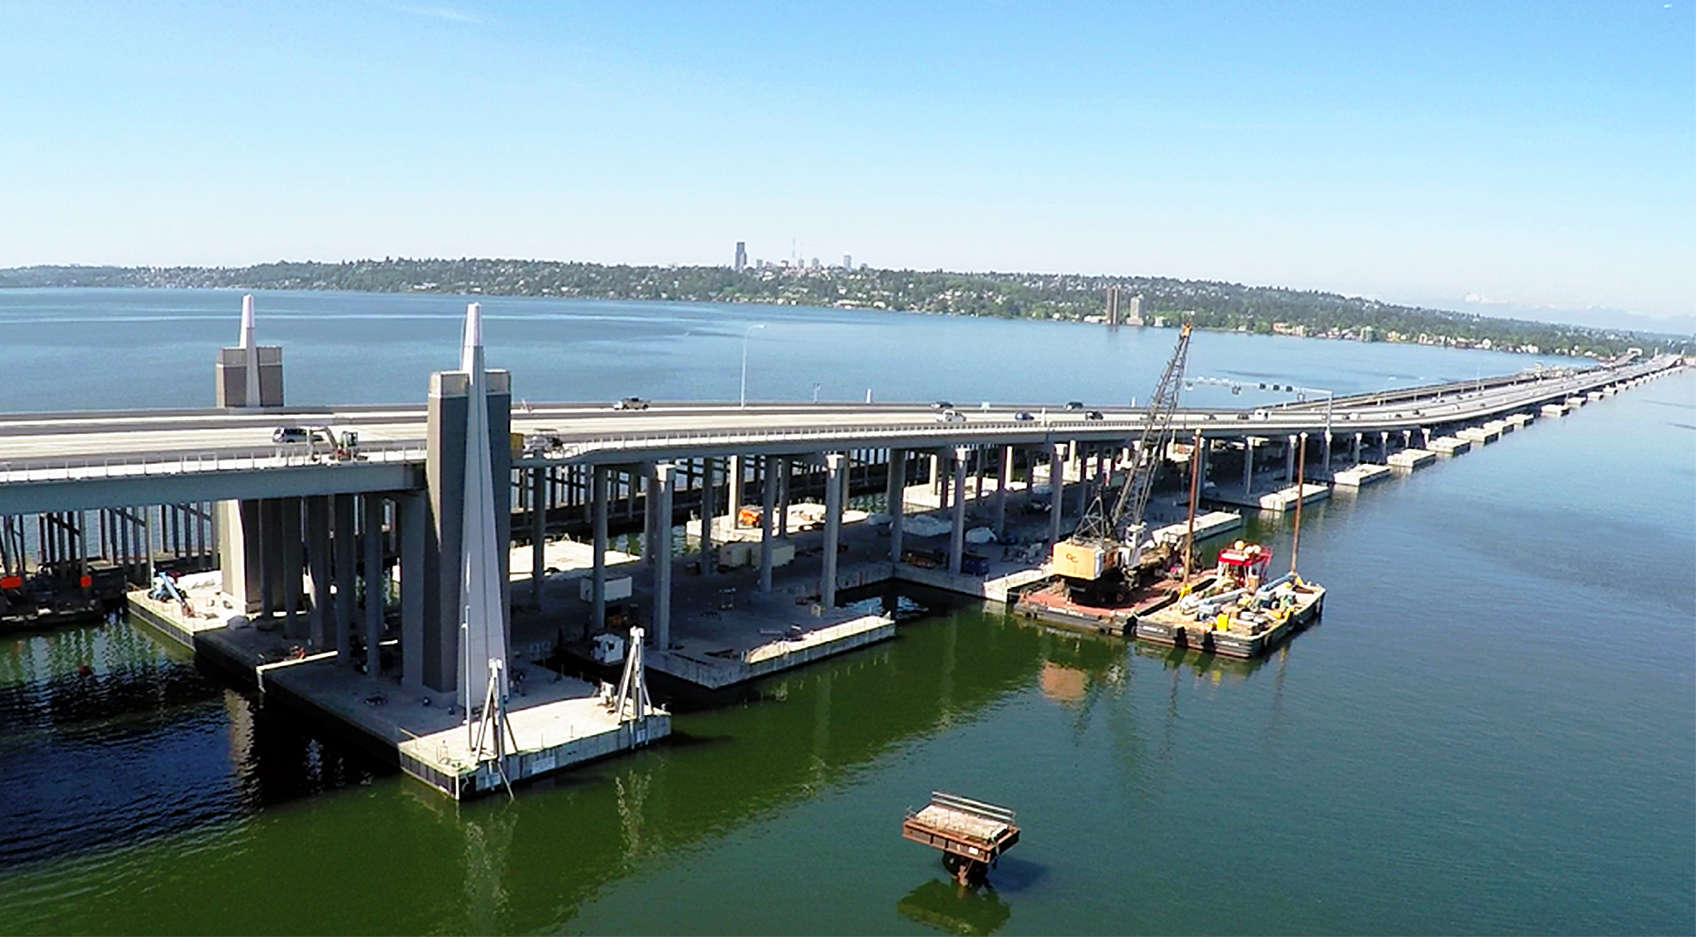 SR 520 EVERGREEN POINT FLOATING BRIDGE